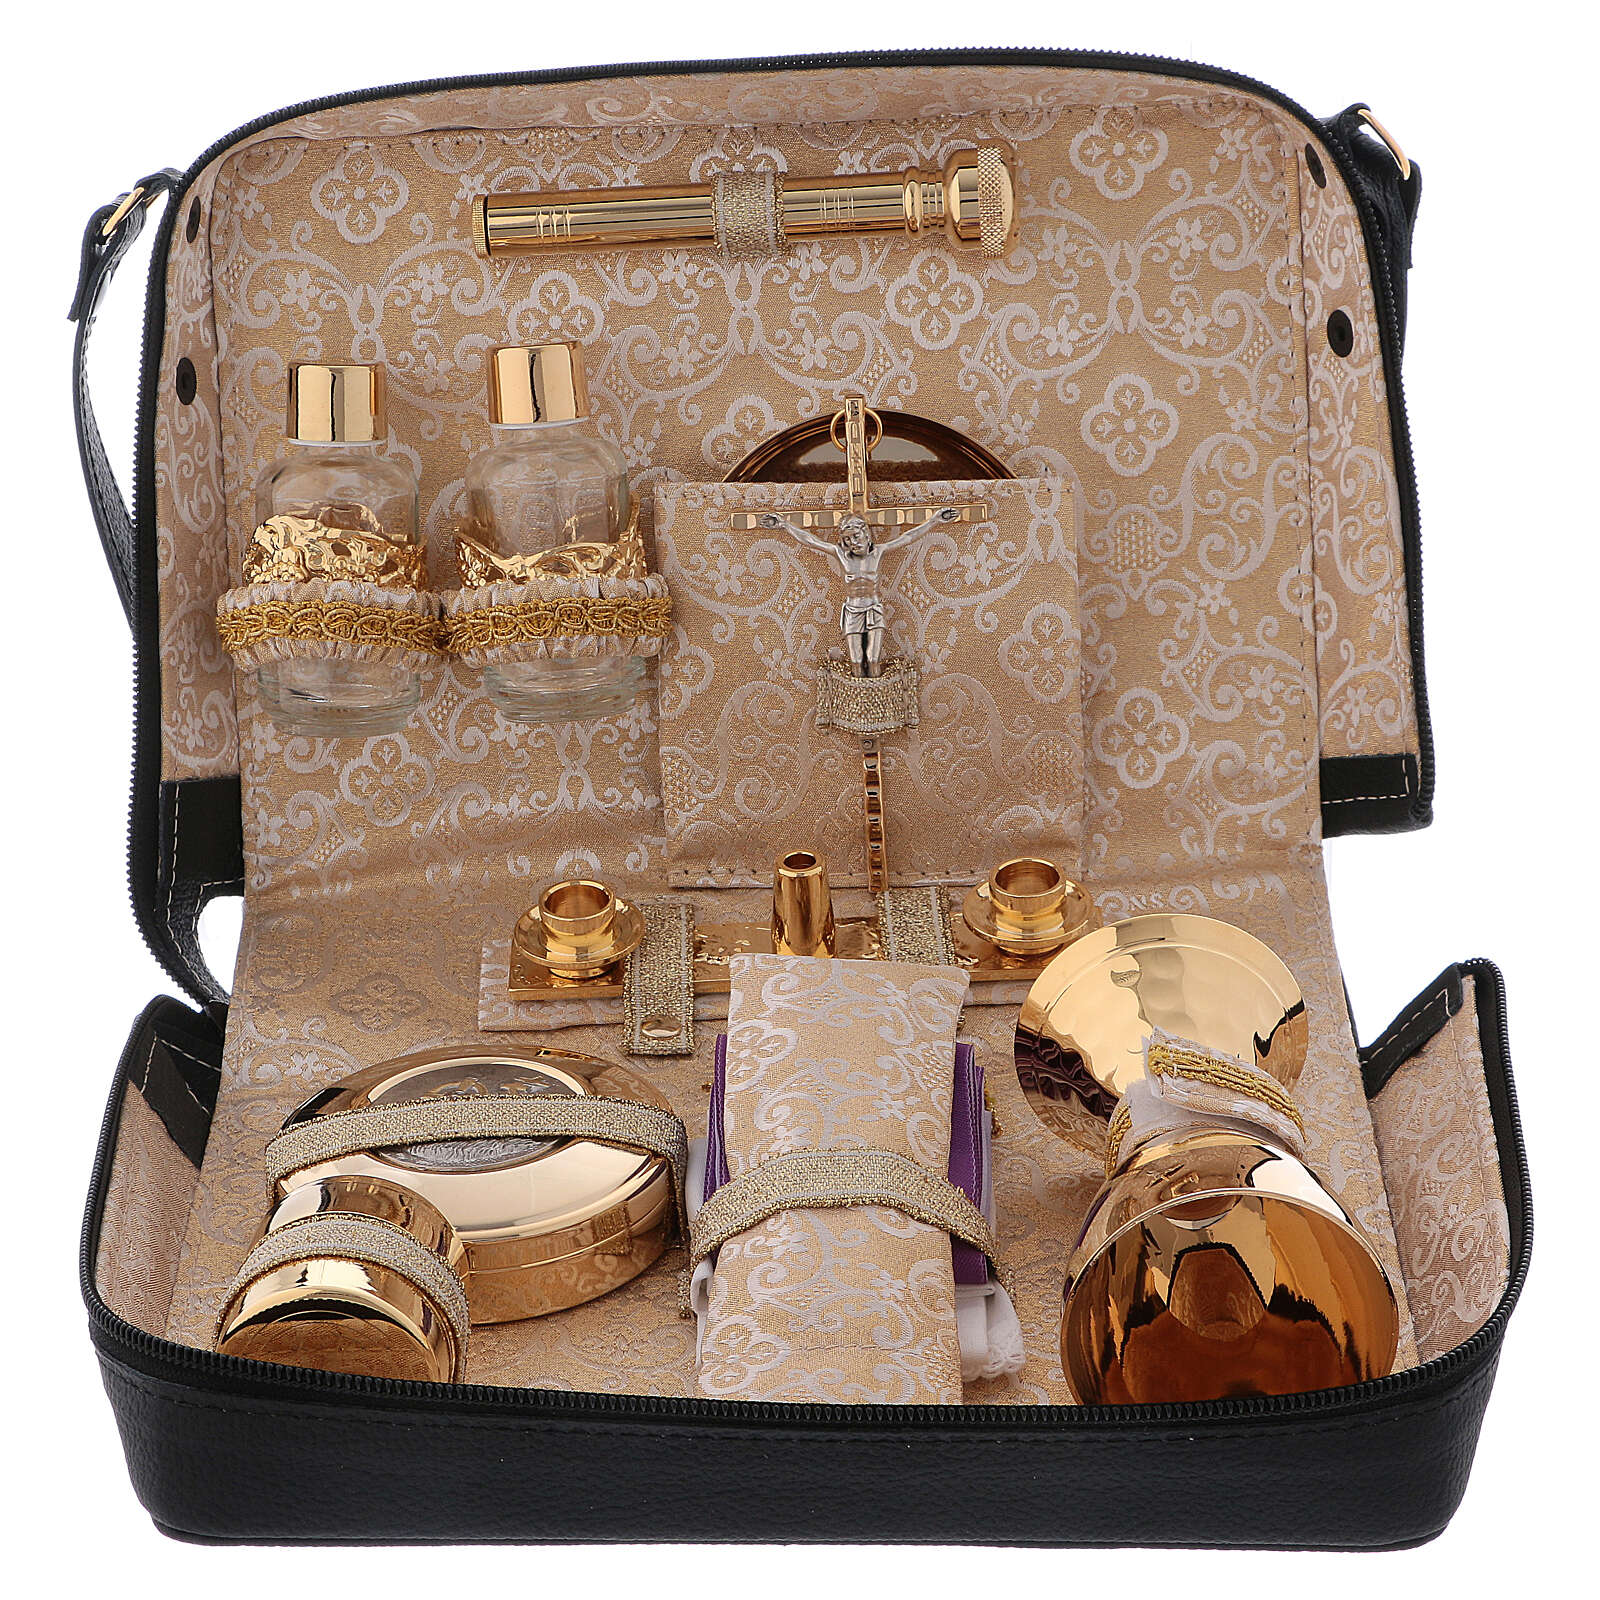 Mass kit with leather bag, lined with golden satin 3